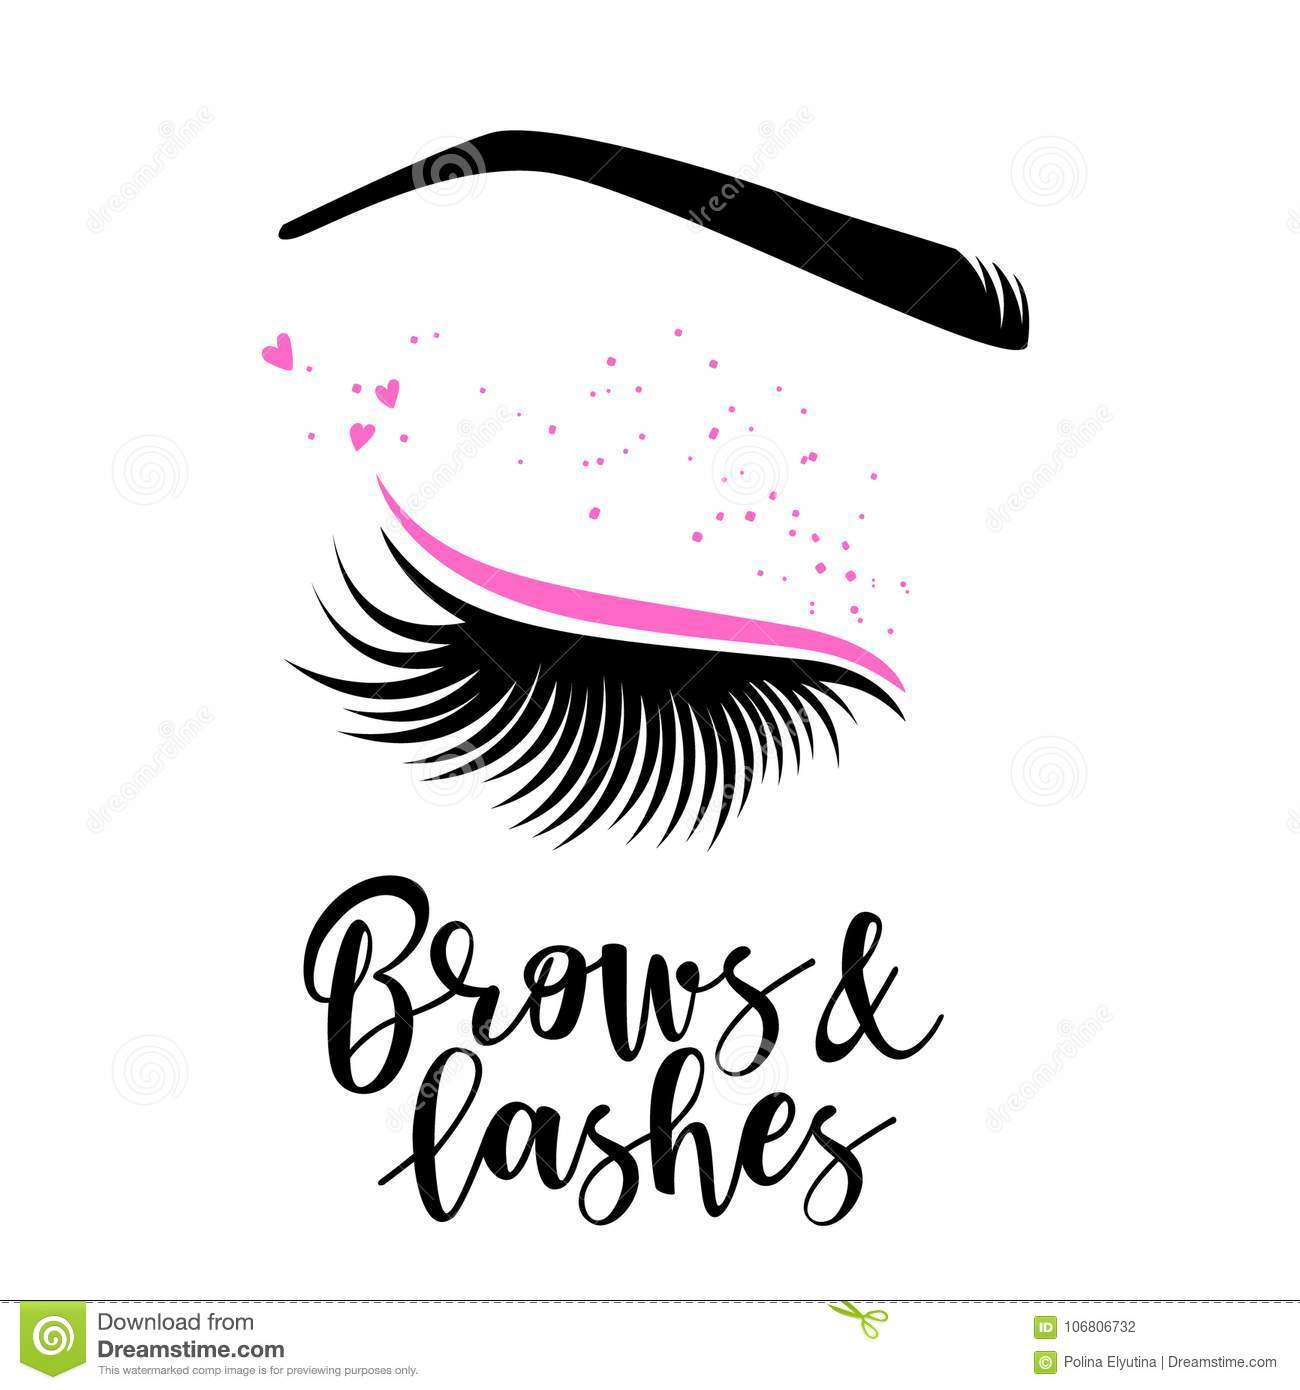 bd5e5a86467 Brows and lashes lettering. Vector illustration of lashes. For beauty  salon, lash extensions maker, brow master.